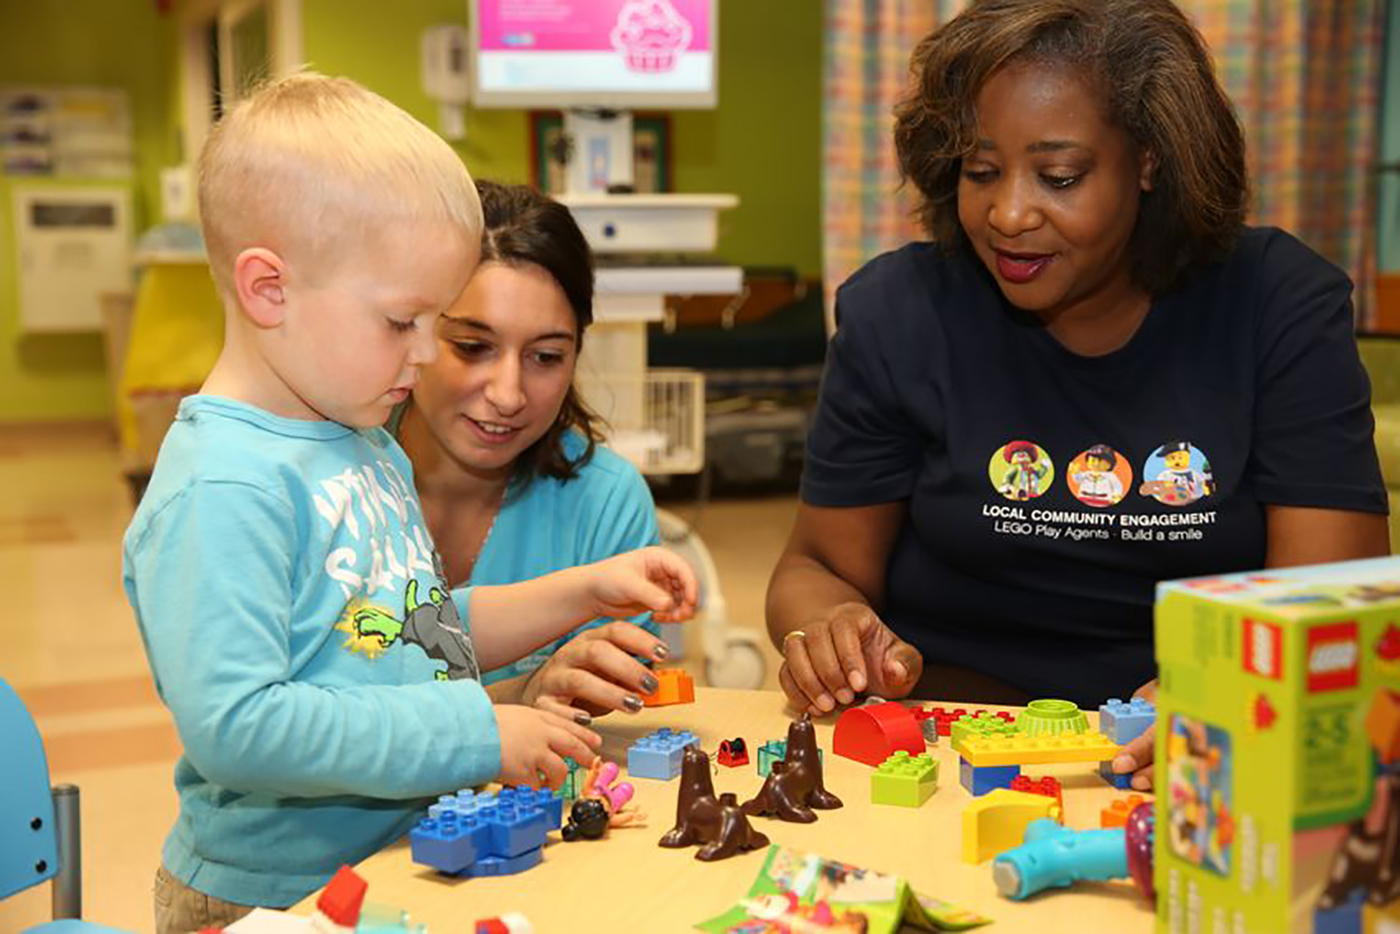 Yale New Haven Children's Hospital Family Resource Center